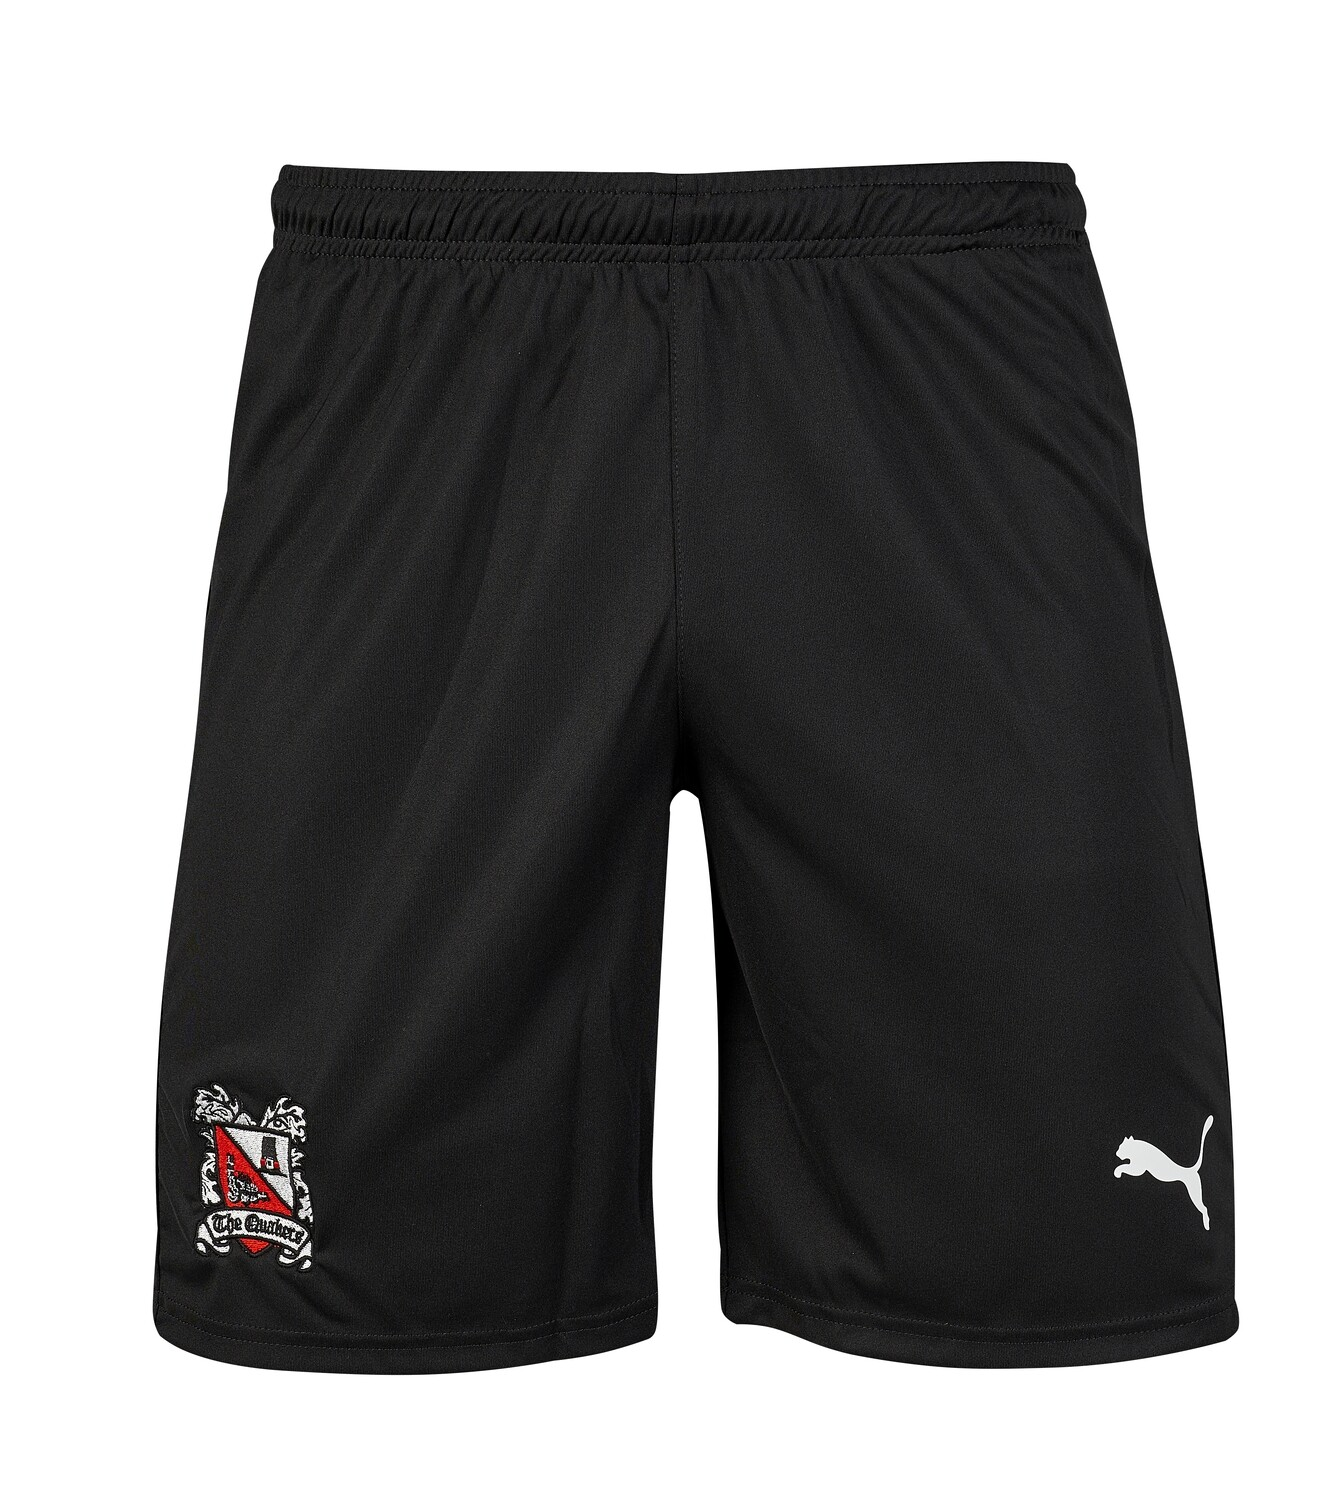 Puma Home Shorts 19/20 Adult